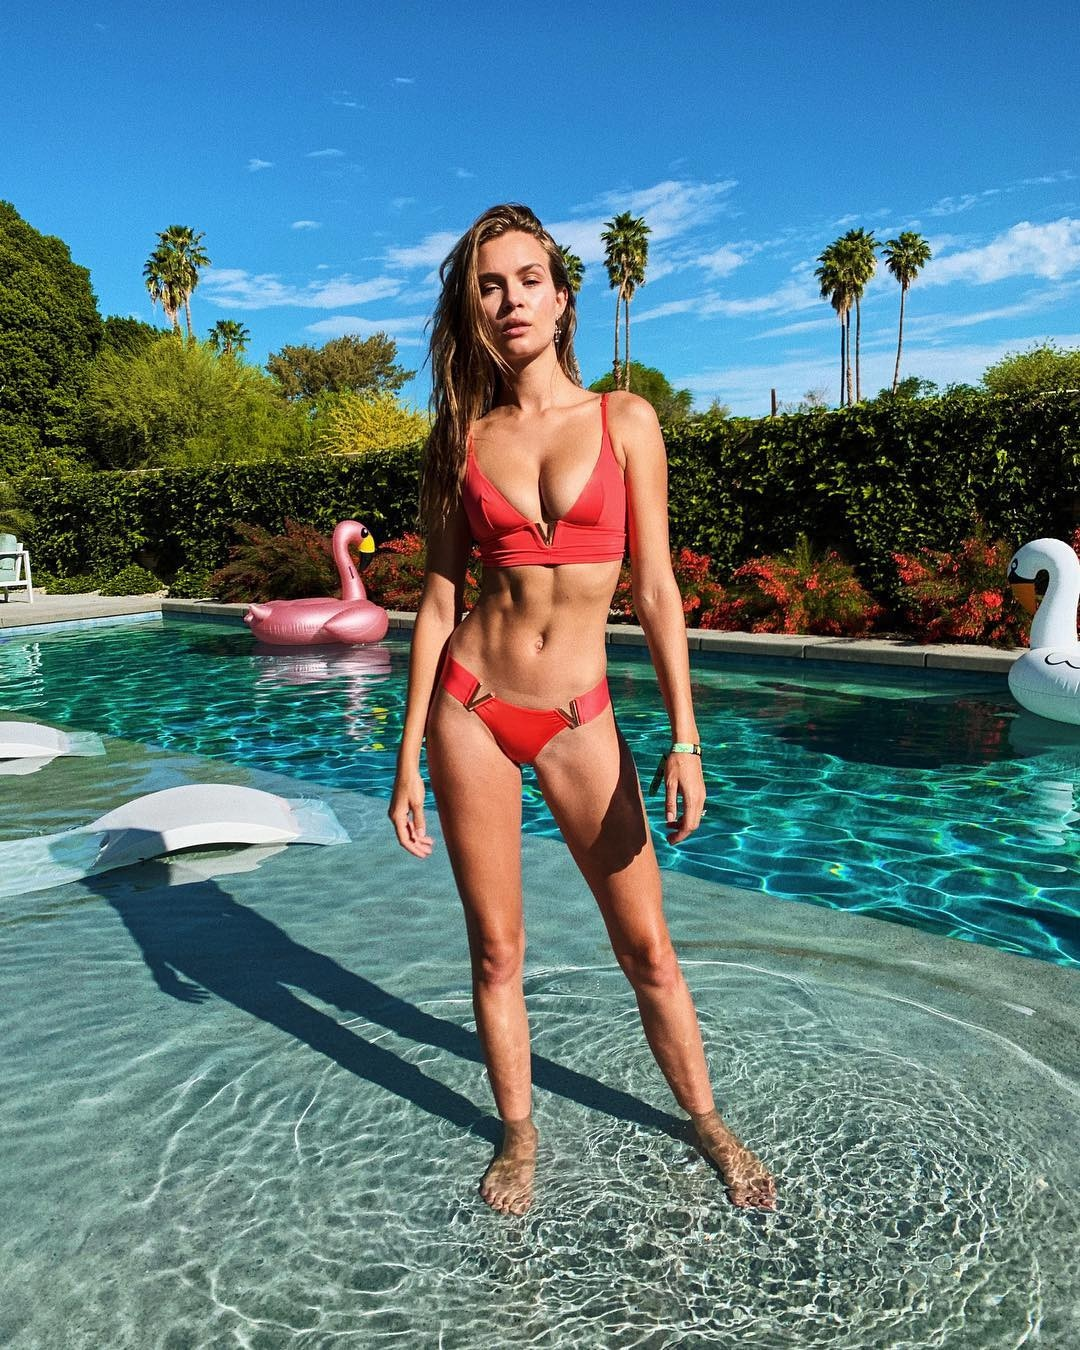 Josephine Skriver -  An angel in the desert! The Victoria's Secret model enjoys a day by the pool before heading into Weekend 2 of Coachella.